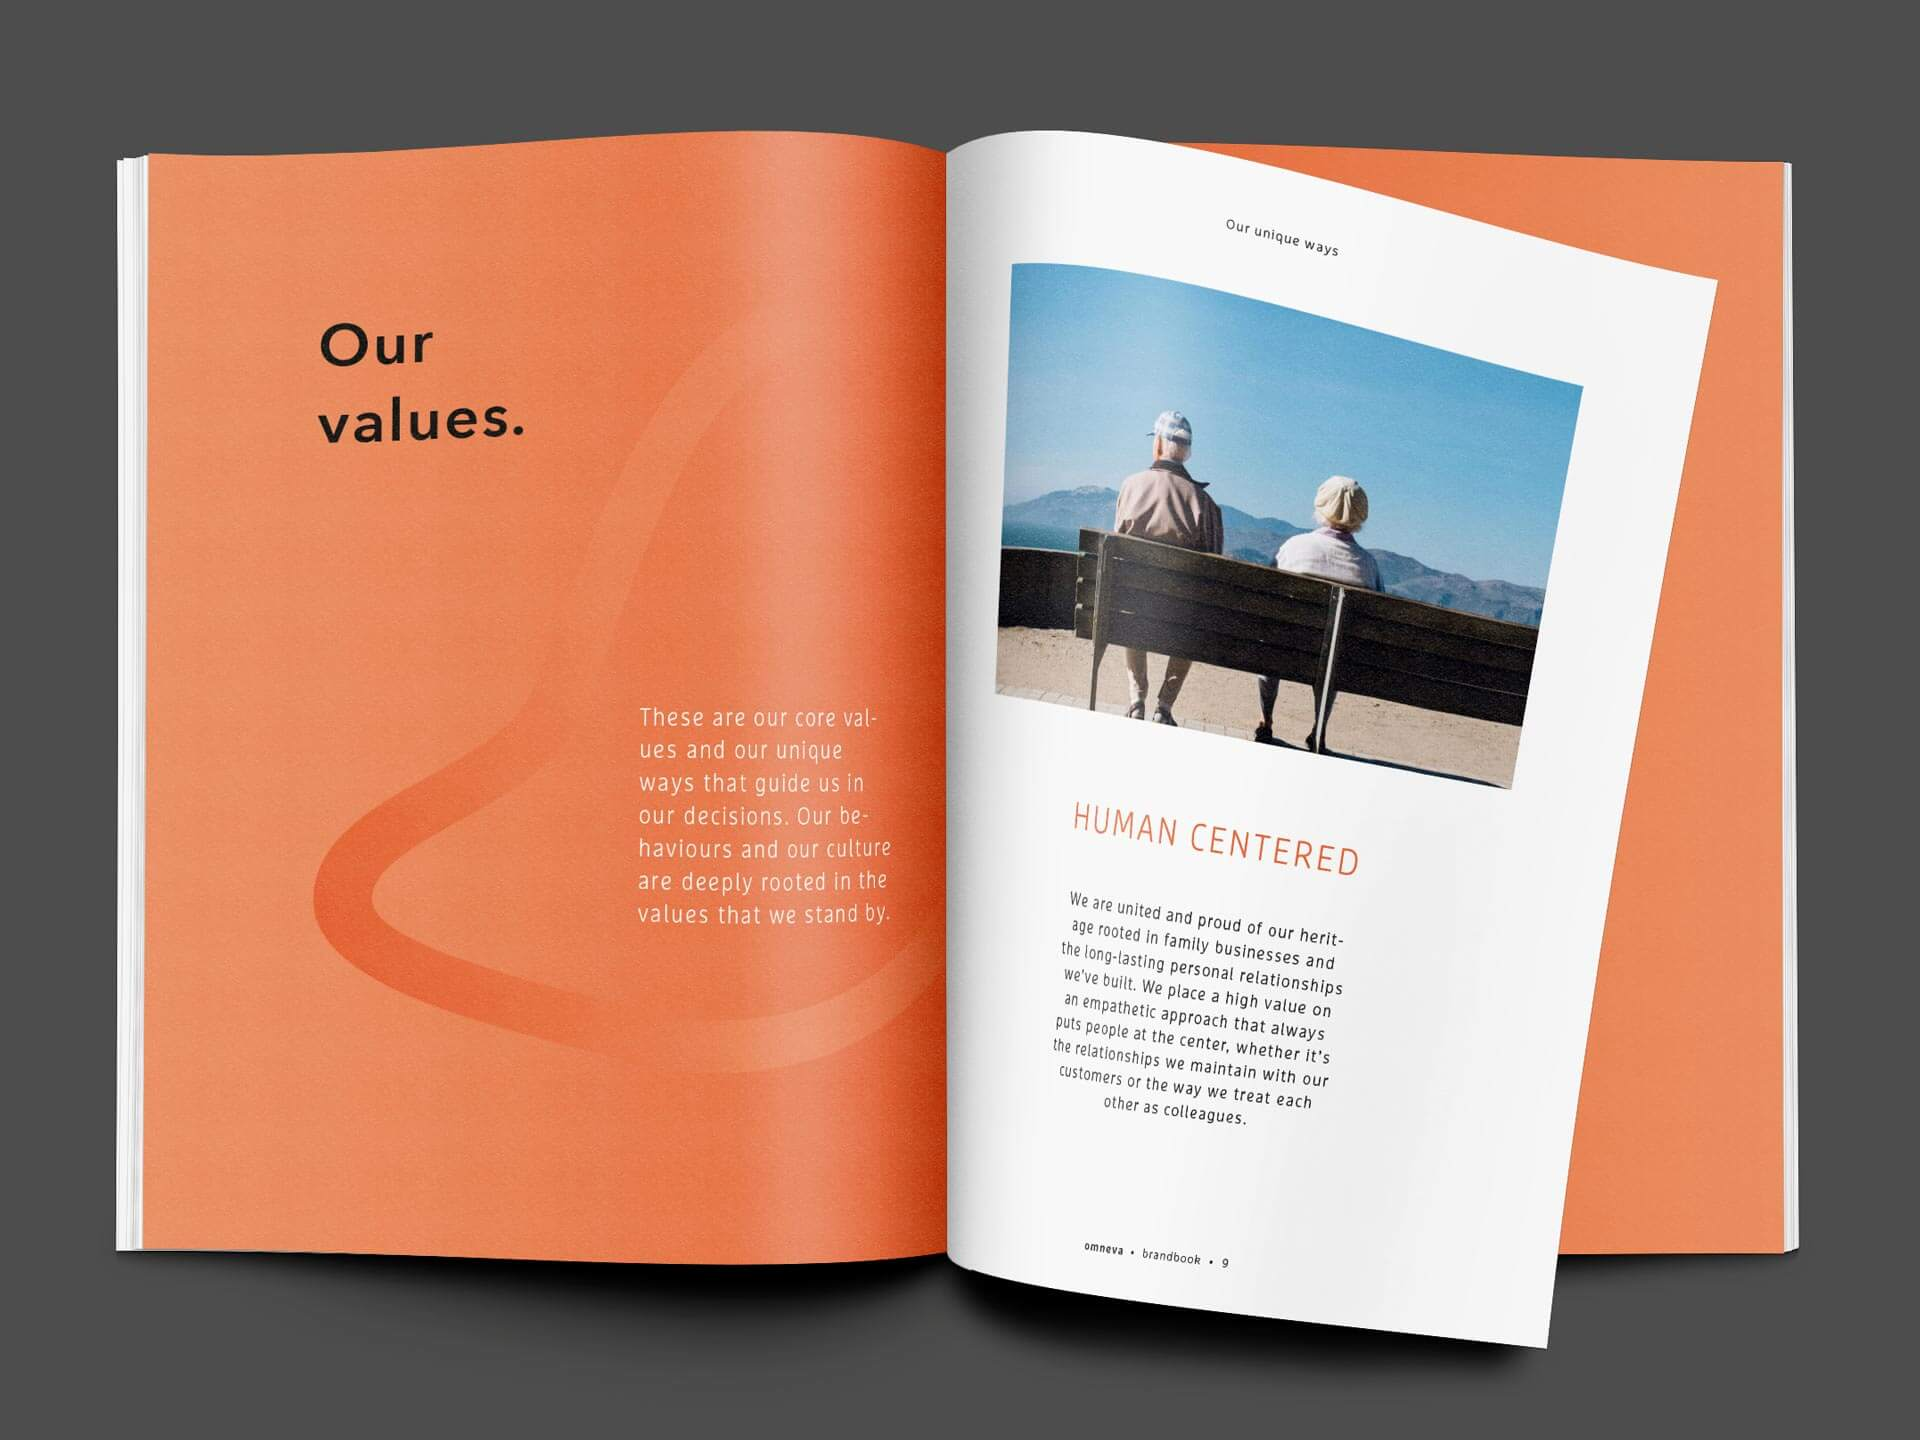 Spread with the Description of their Values in the Brandbook for Omneva.